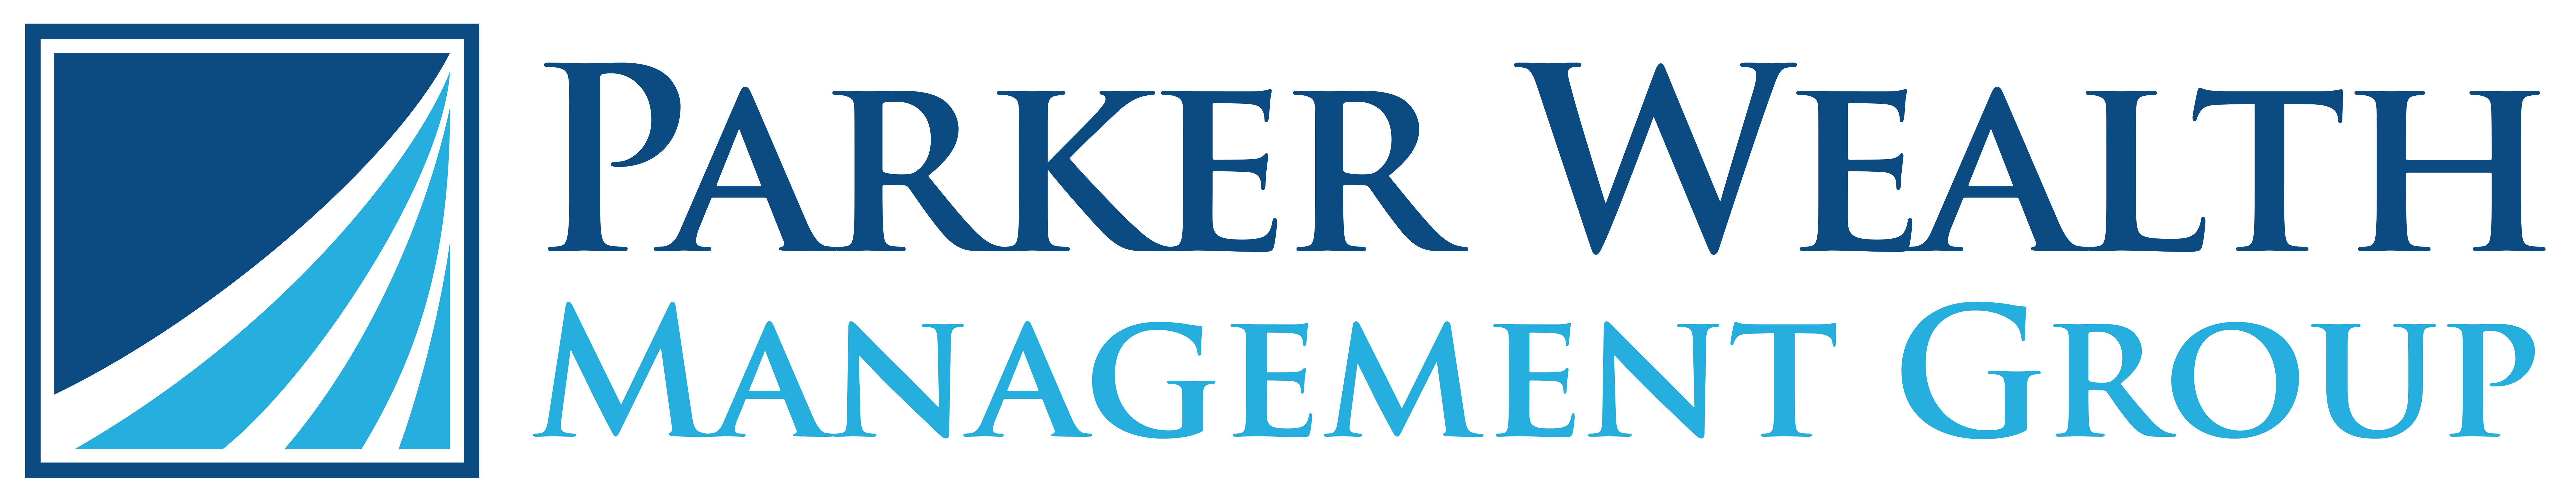 Parker Wealth Management Group